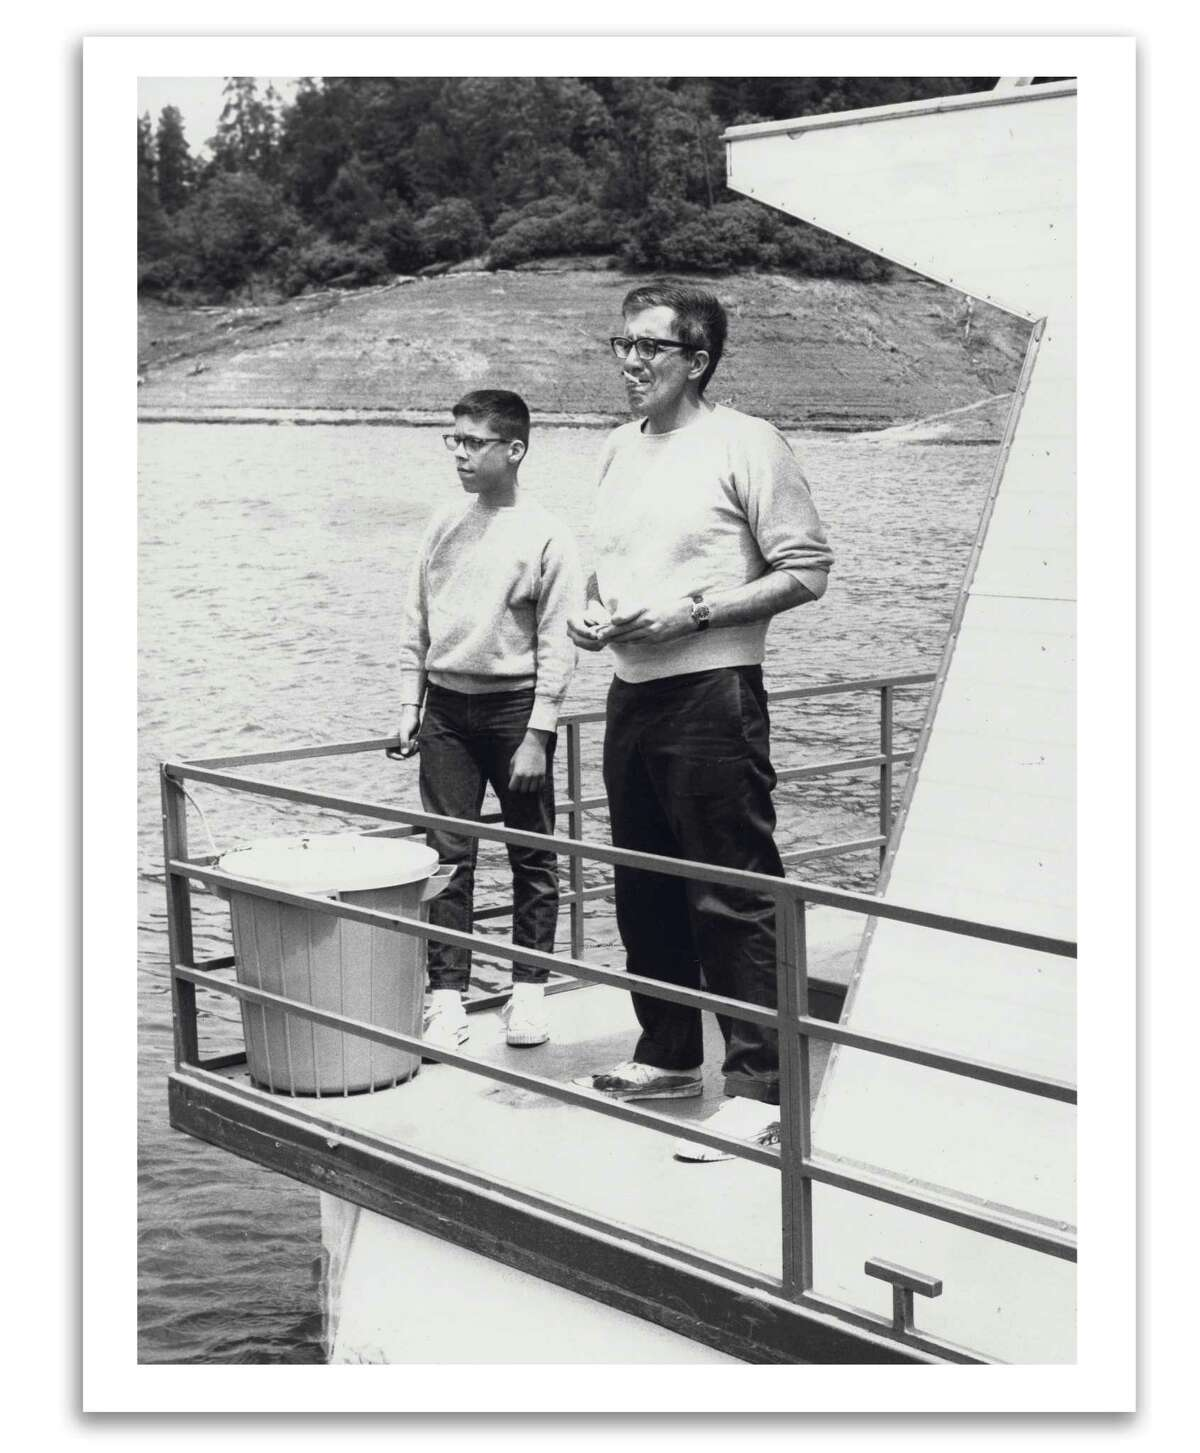 KQED host Greg Sherwood fishes with his father on Lake Shasta in the early 1960s.